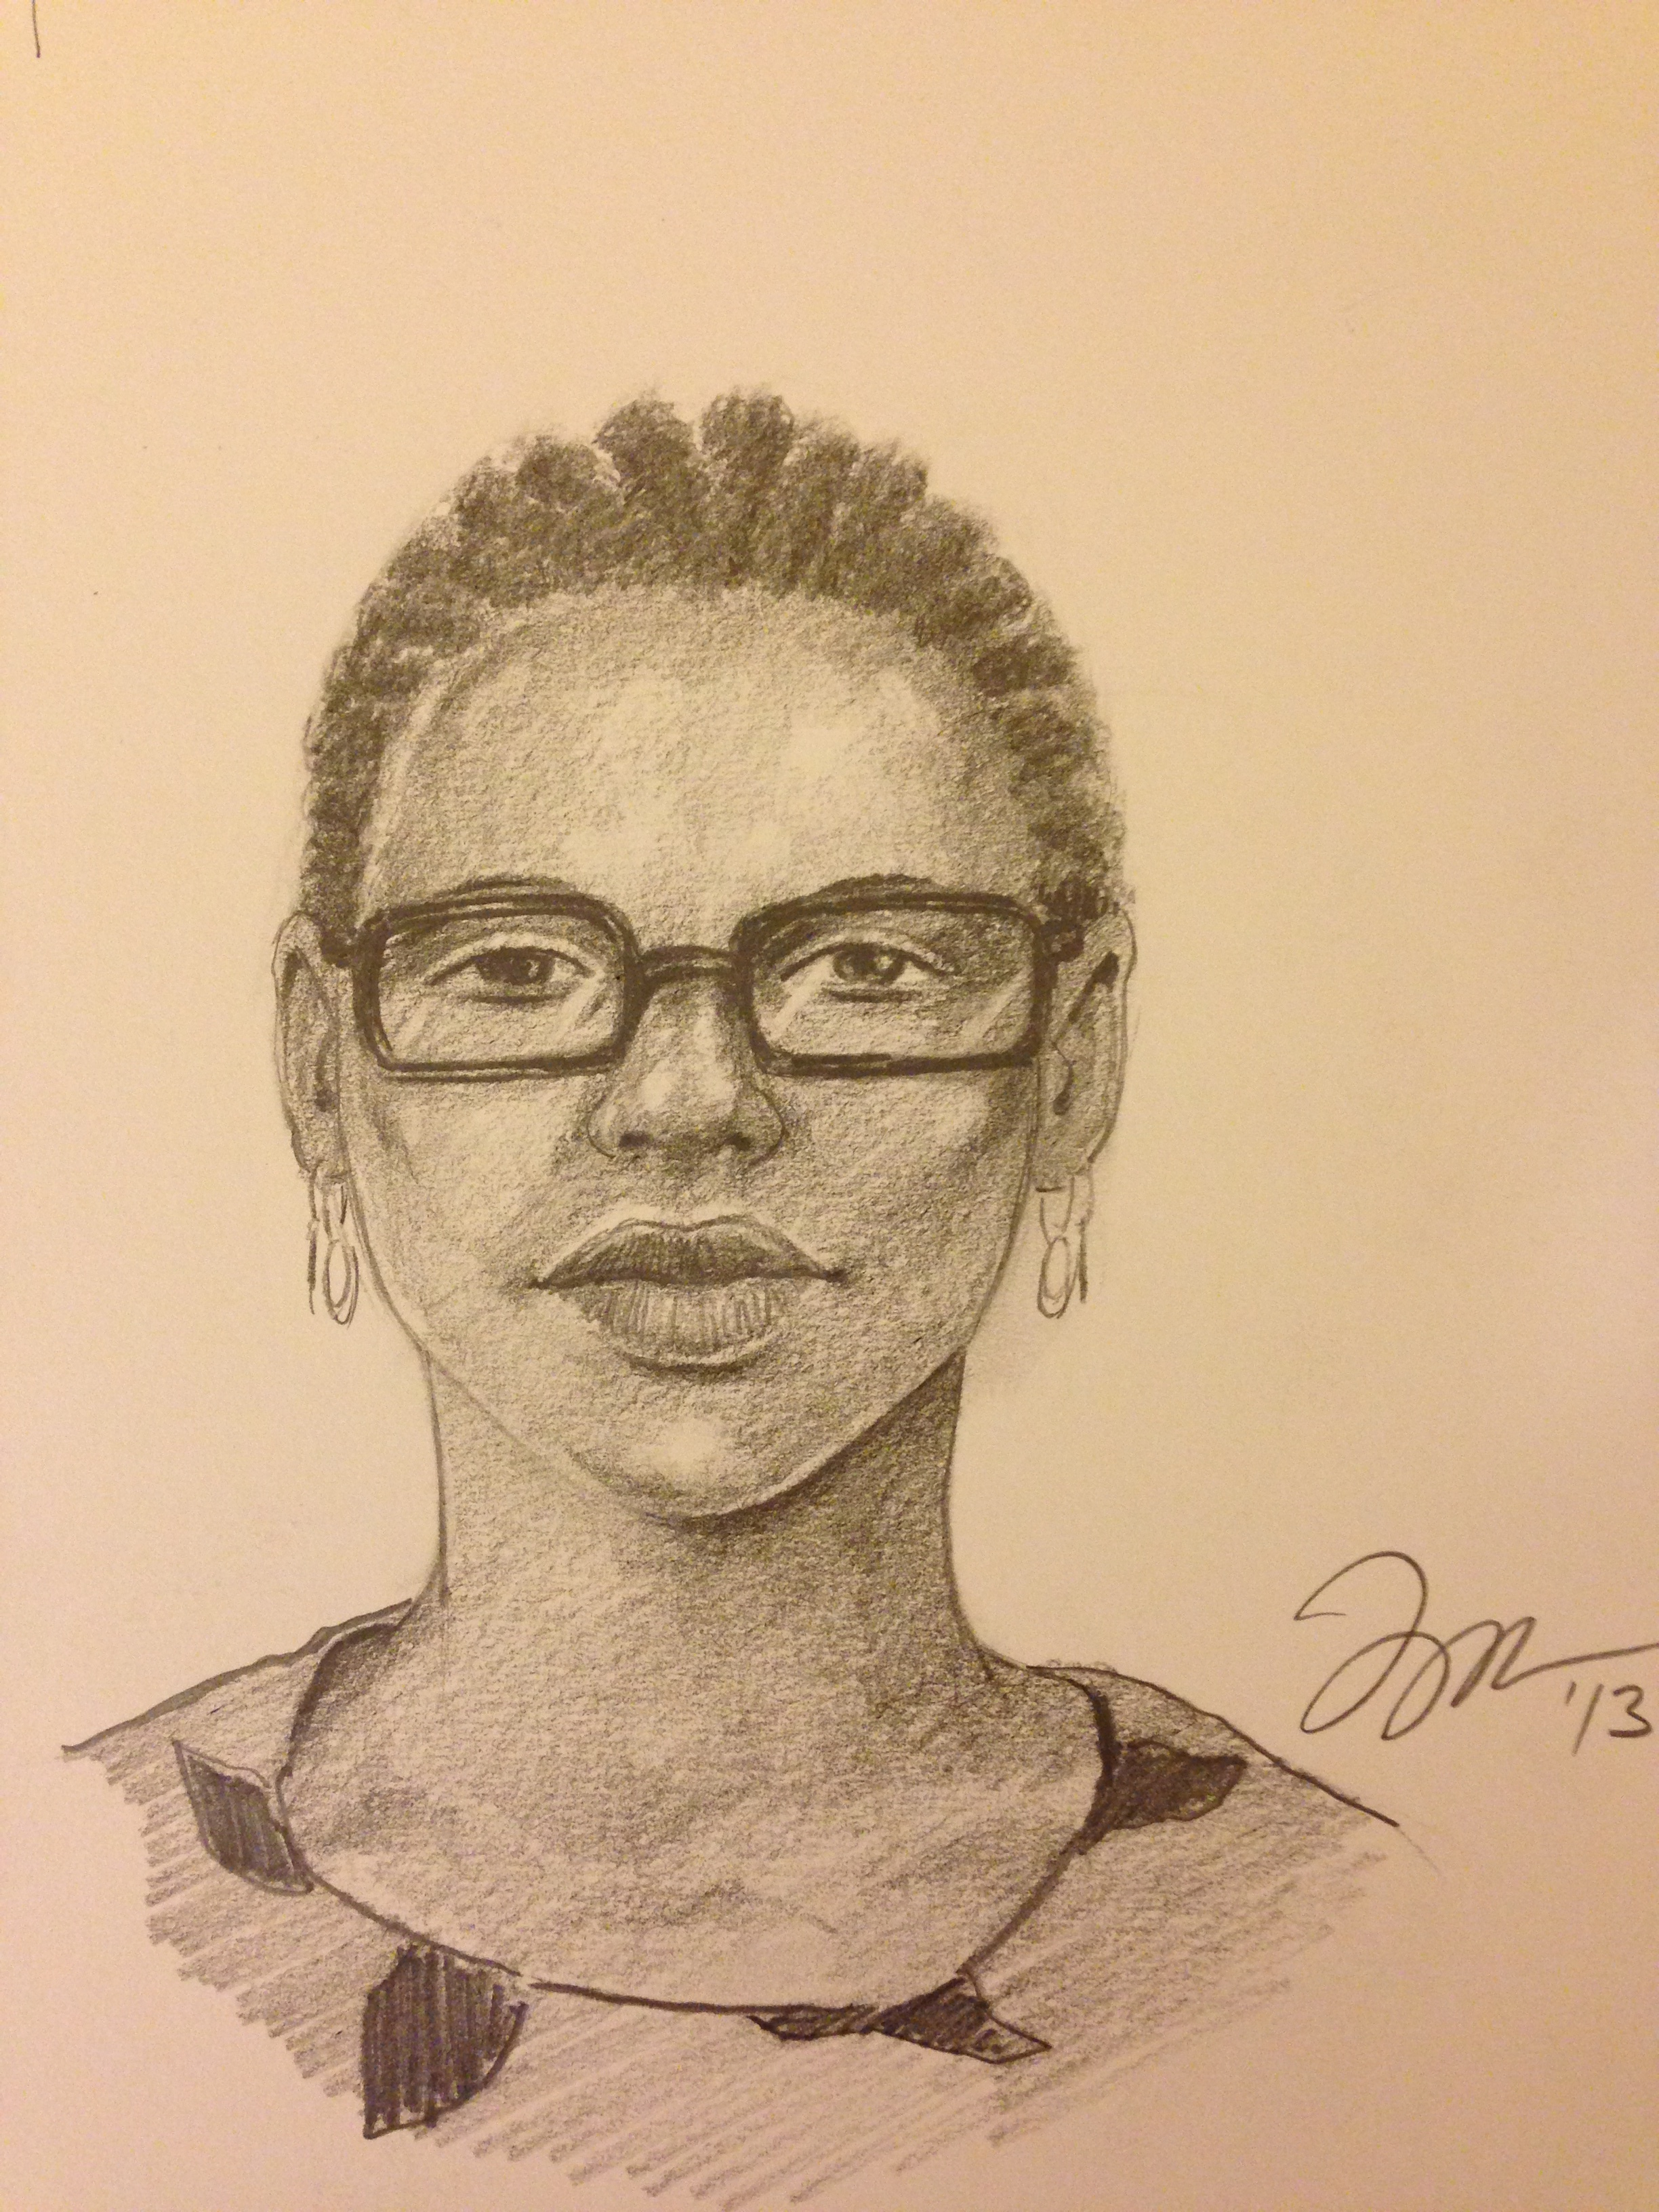 """Zamora, Gil.  Perspective Sketch: Lady with glasses . 2013. Graphite on paper, 11"""" x 14"""". Private collection."""